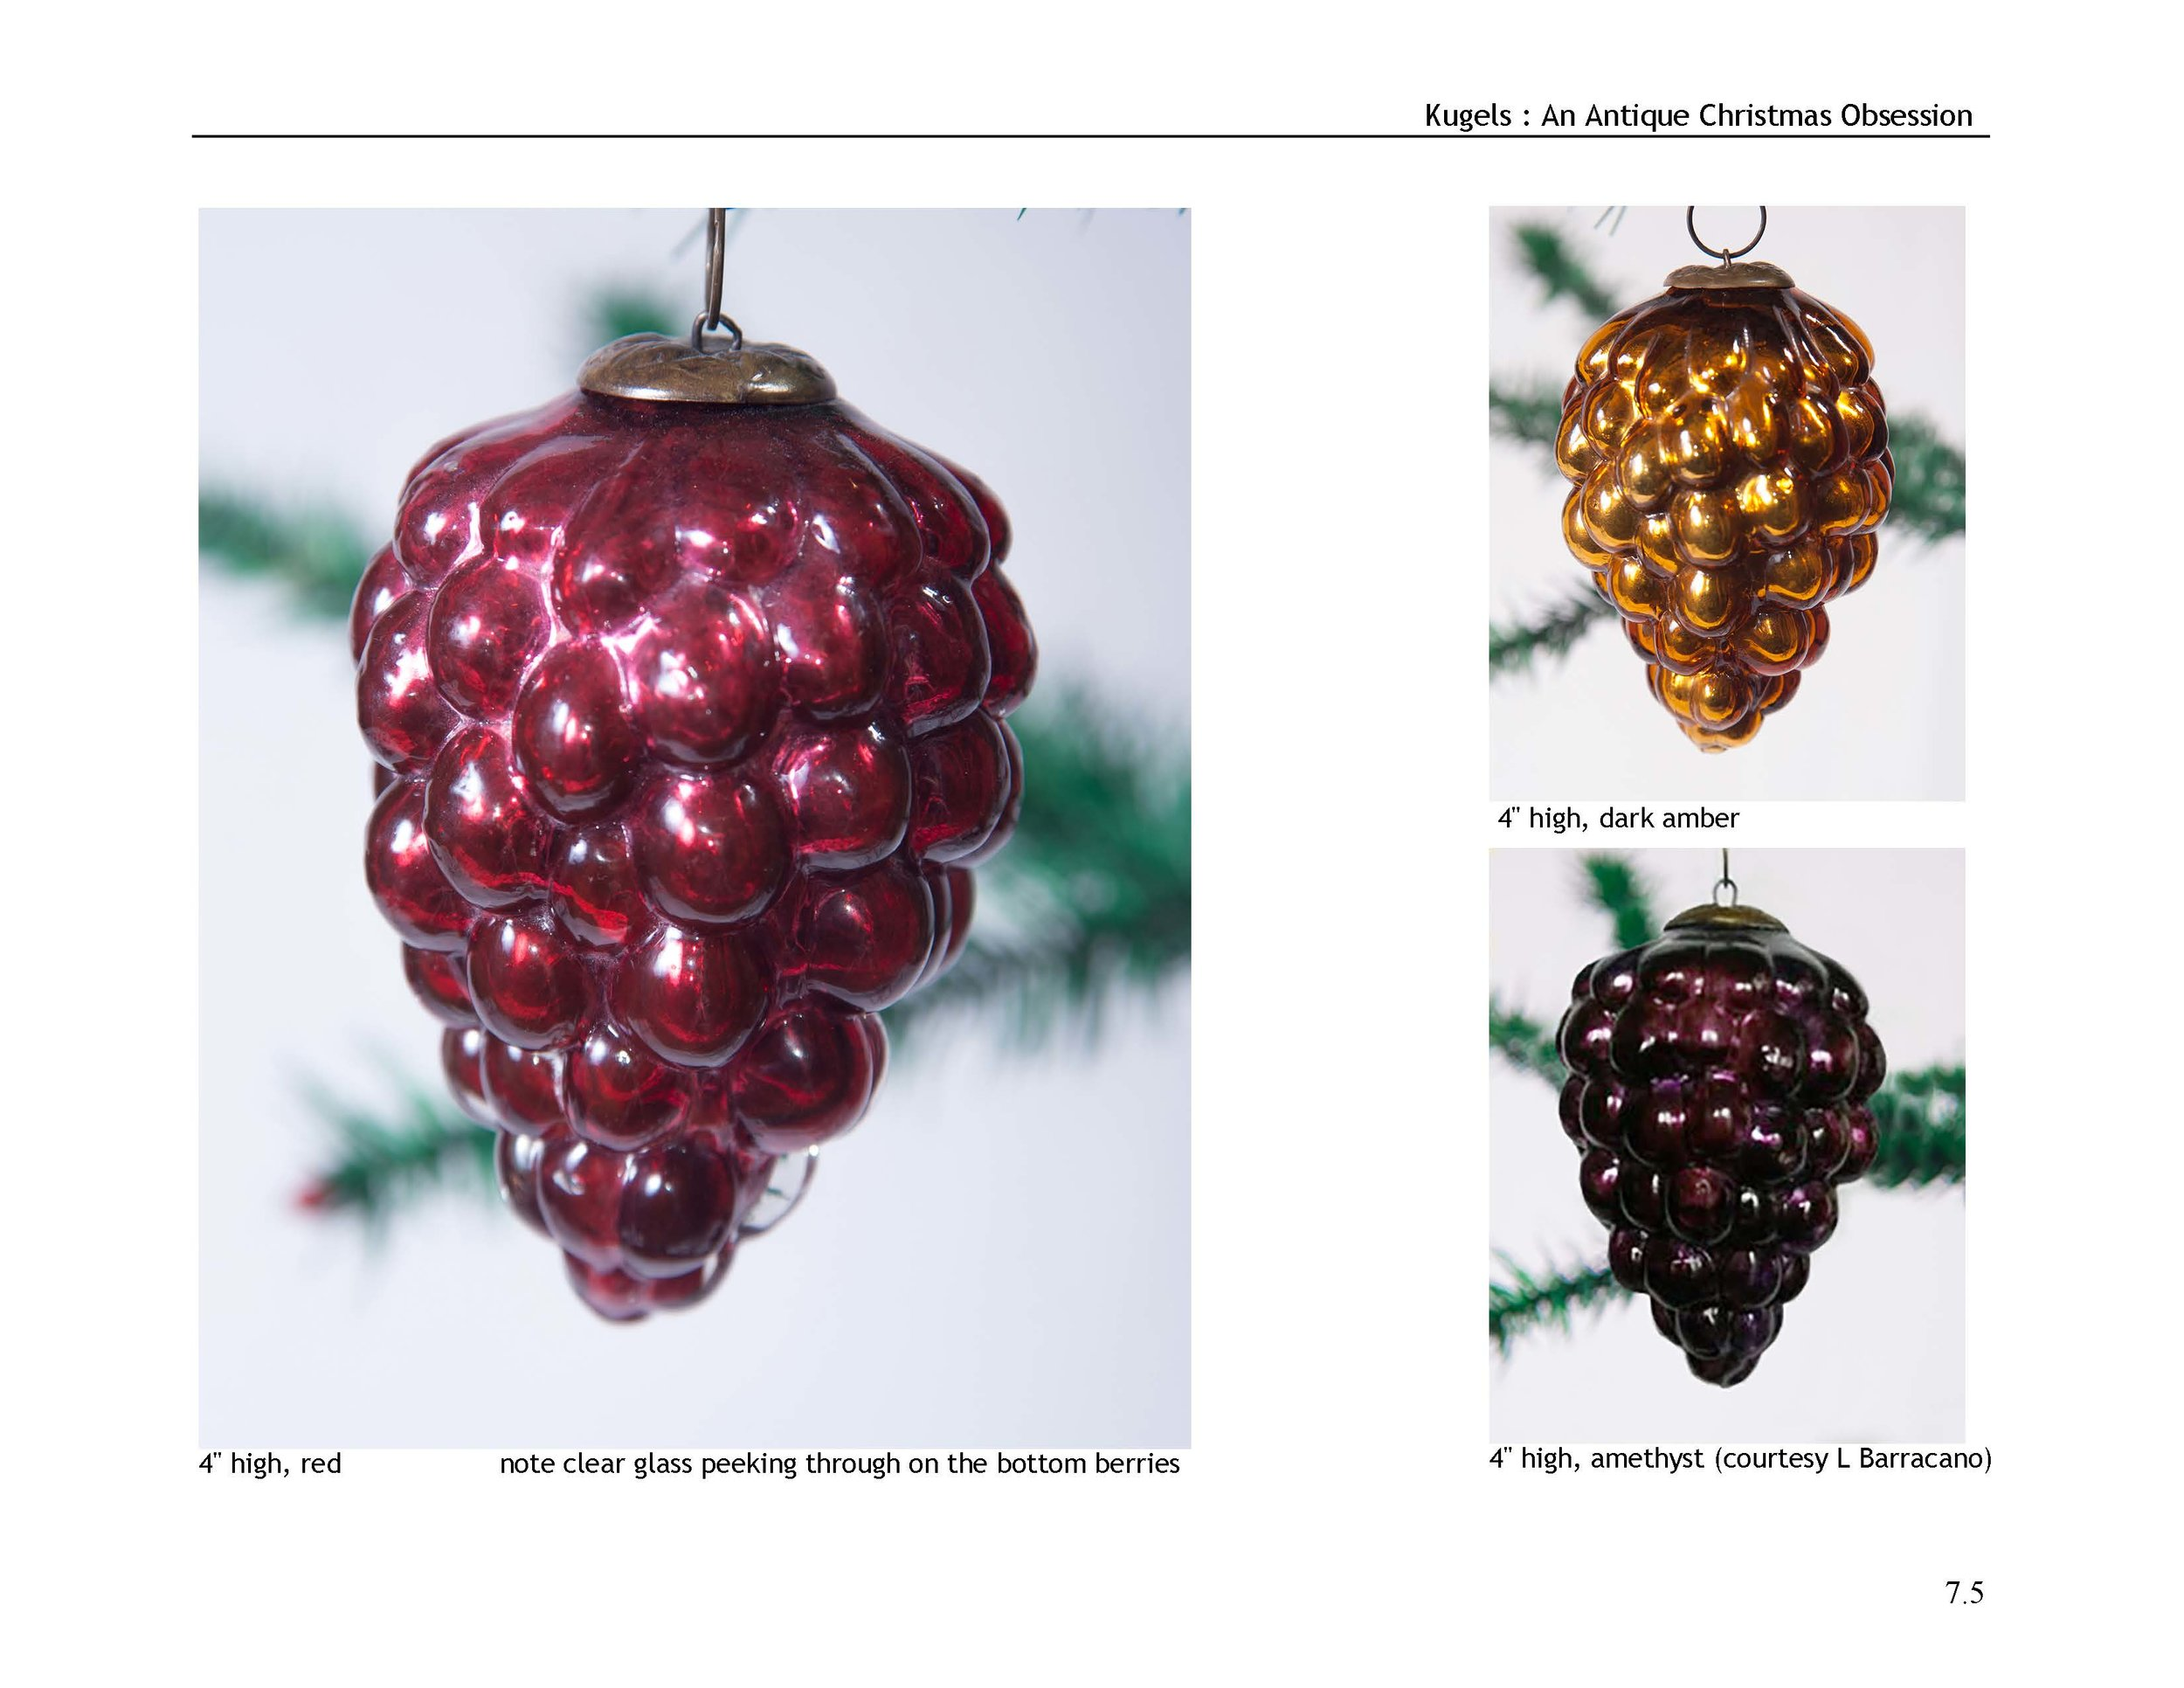 Antique kugel Christmas ornaments known shapes and sizes